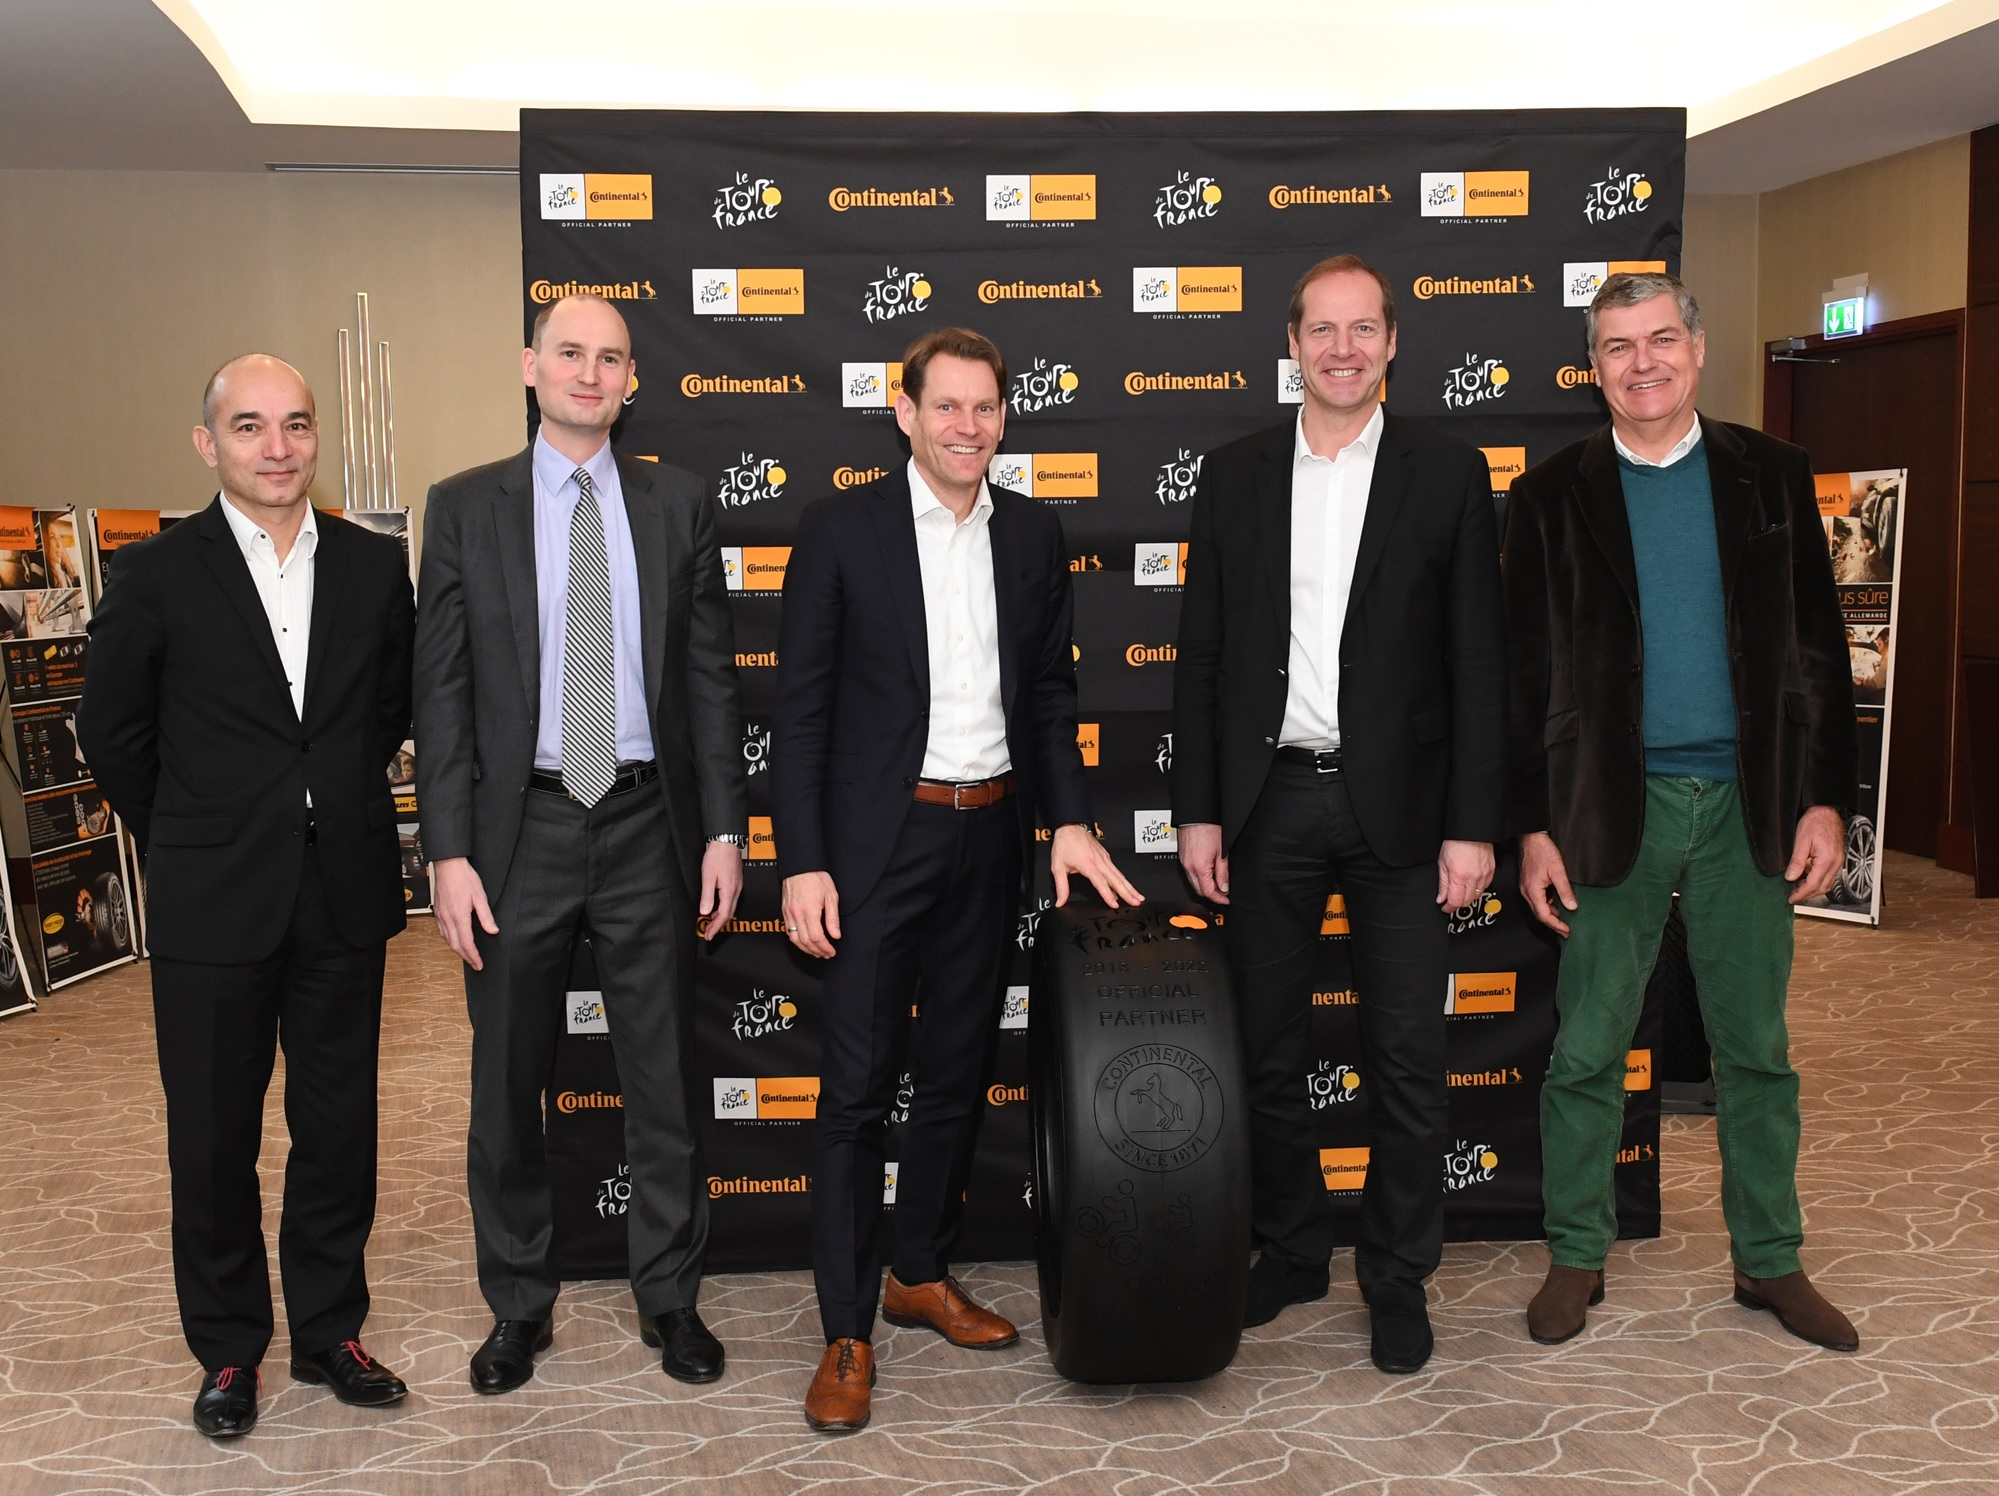 Conti becomes official partner of Tour De France